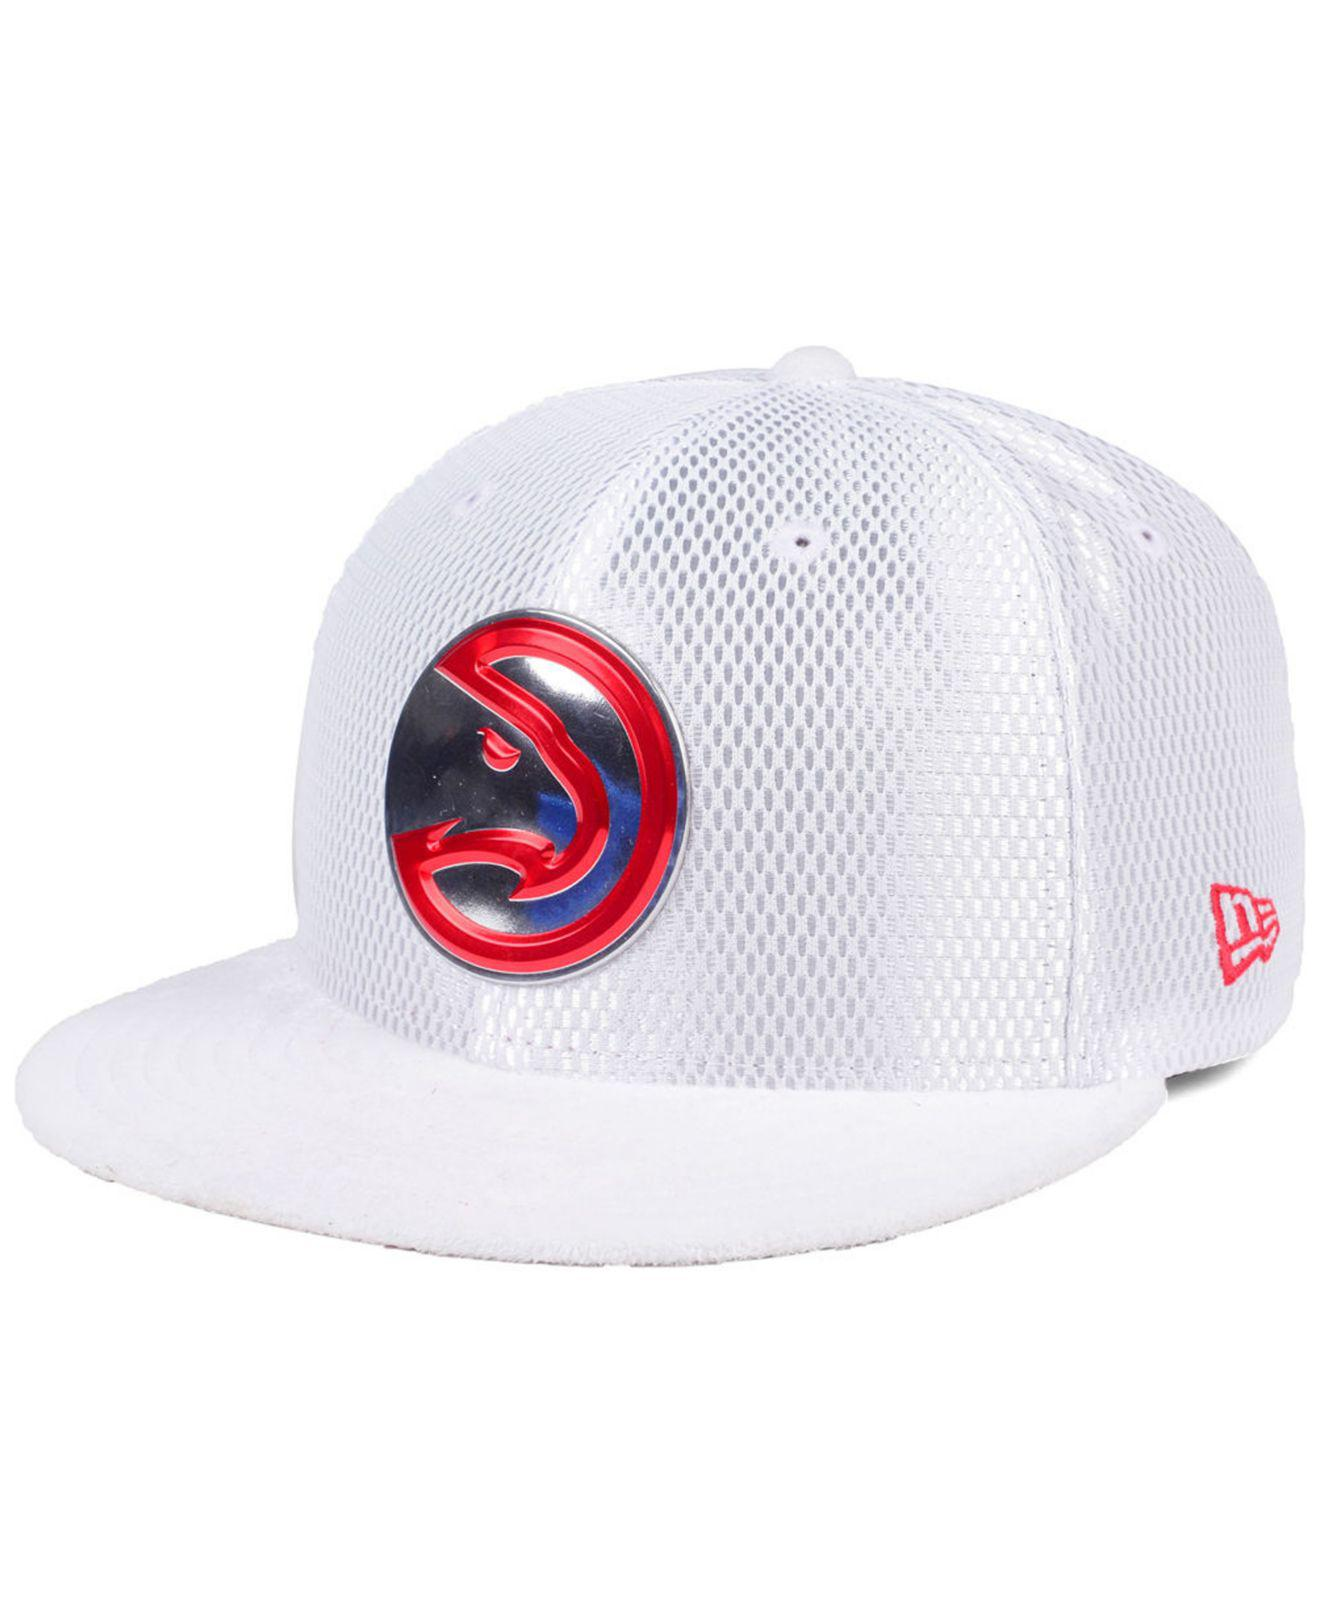 first rate f1ab6 3e032 KTZ - White Atlanta Hawks On-court Collection Draft 59fifty Fitted Cap for  Men -. View fullscreen